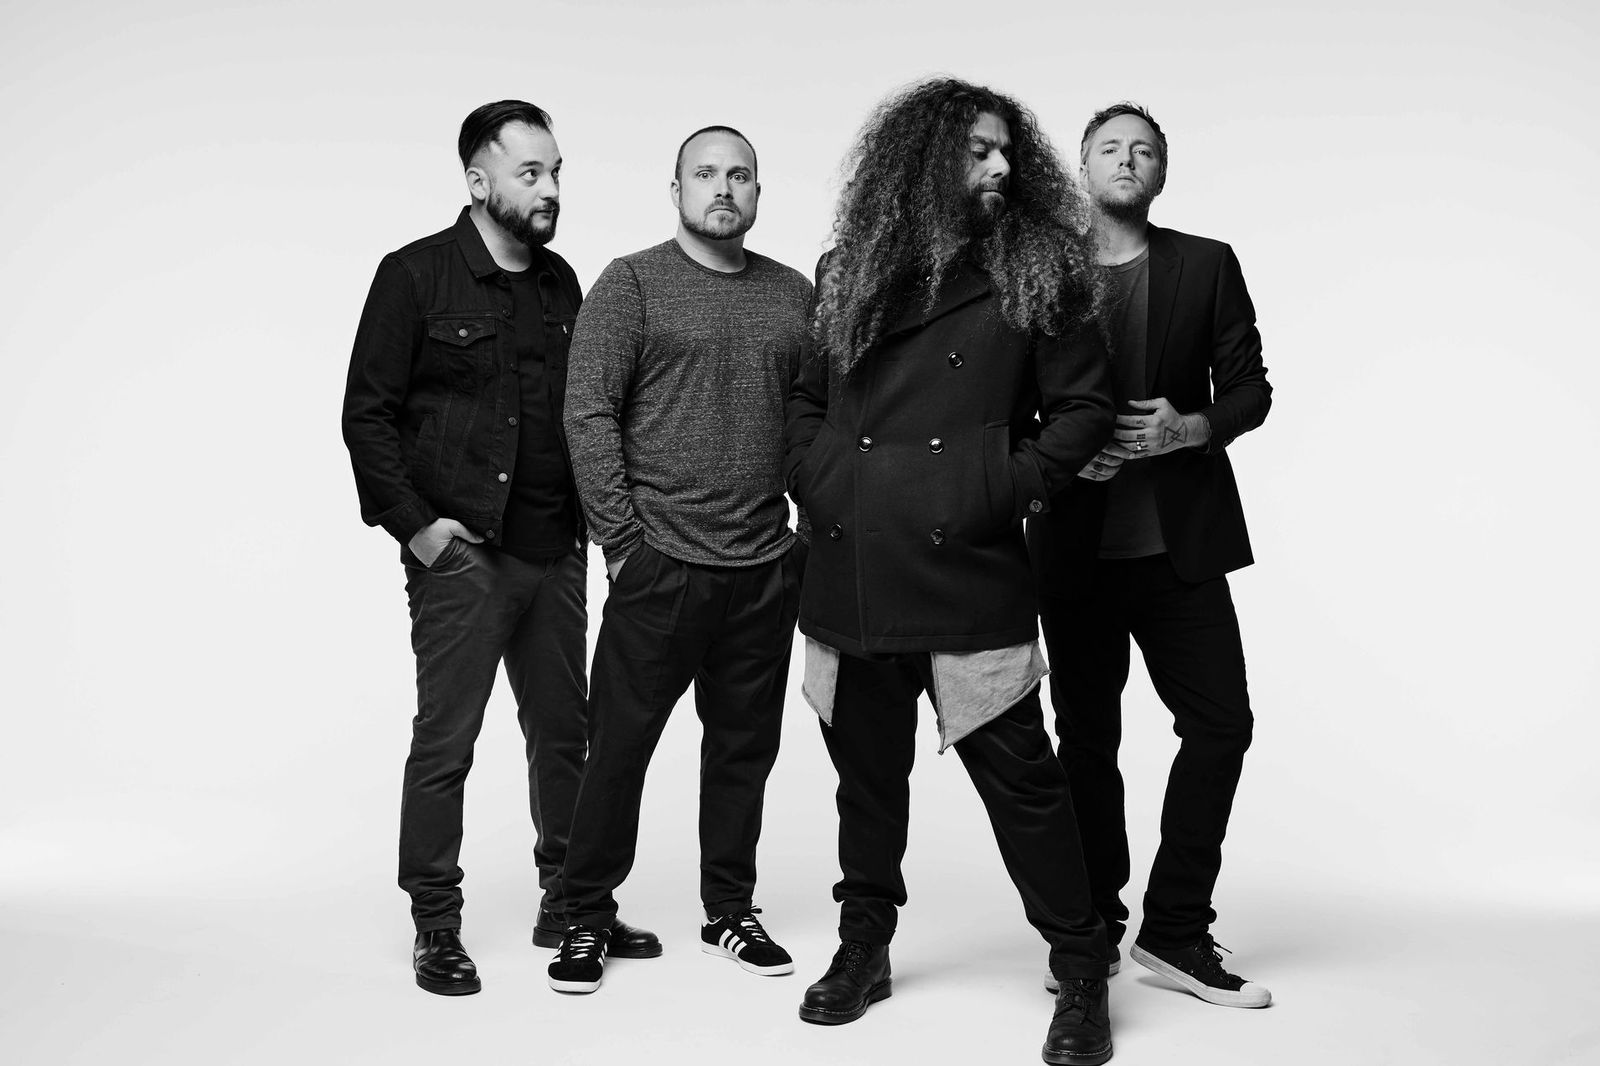 Coheed_and_cambria_new_pub_2_2018_jimmy_fontaine_lo